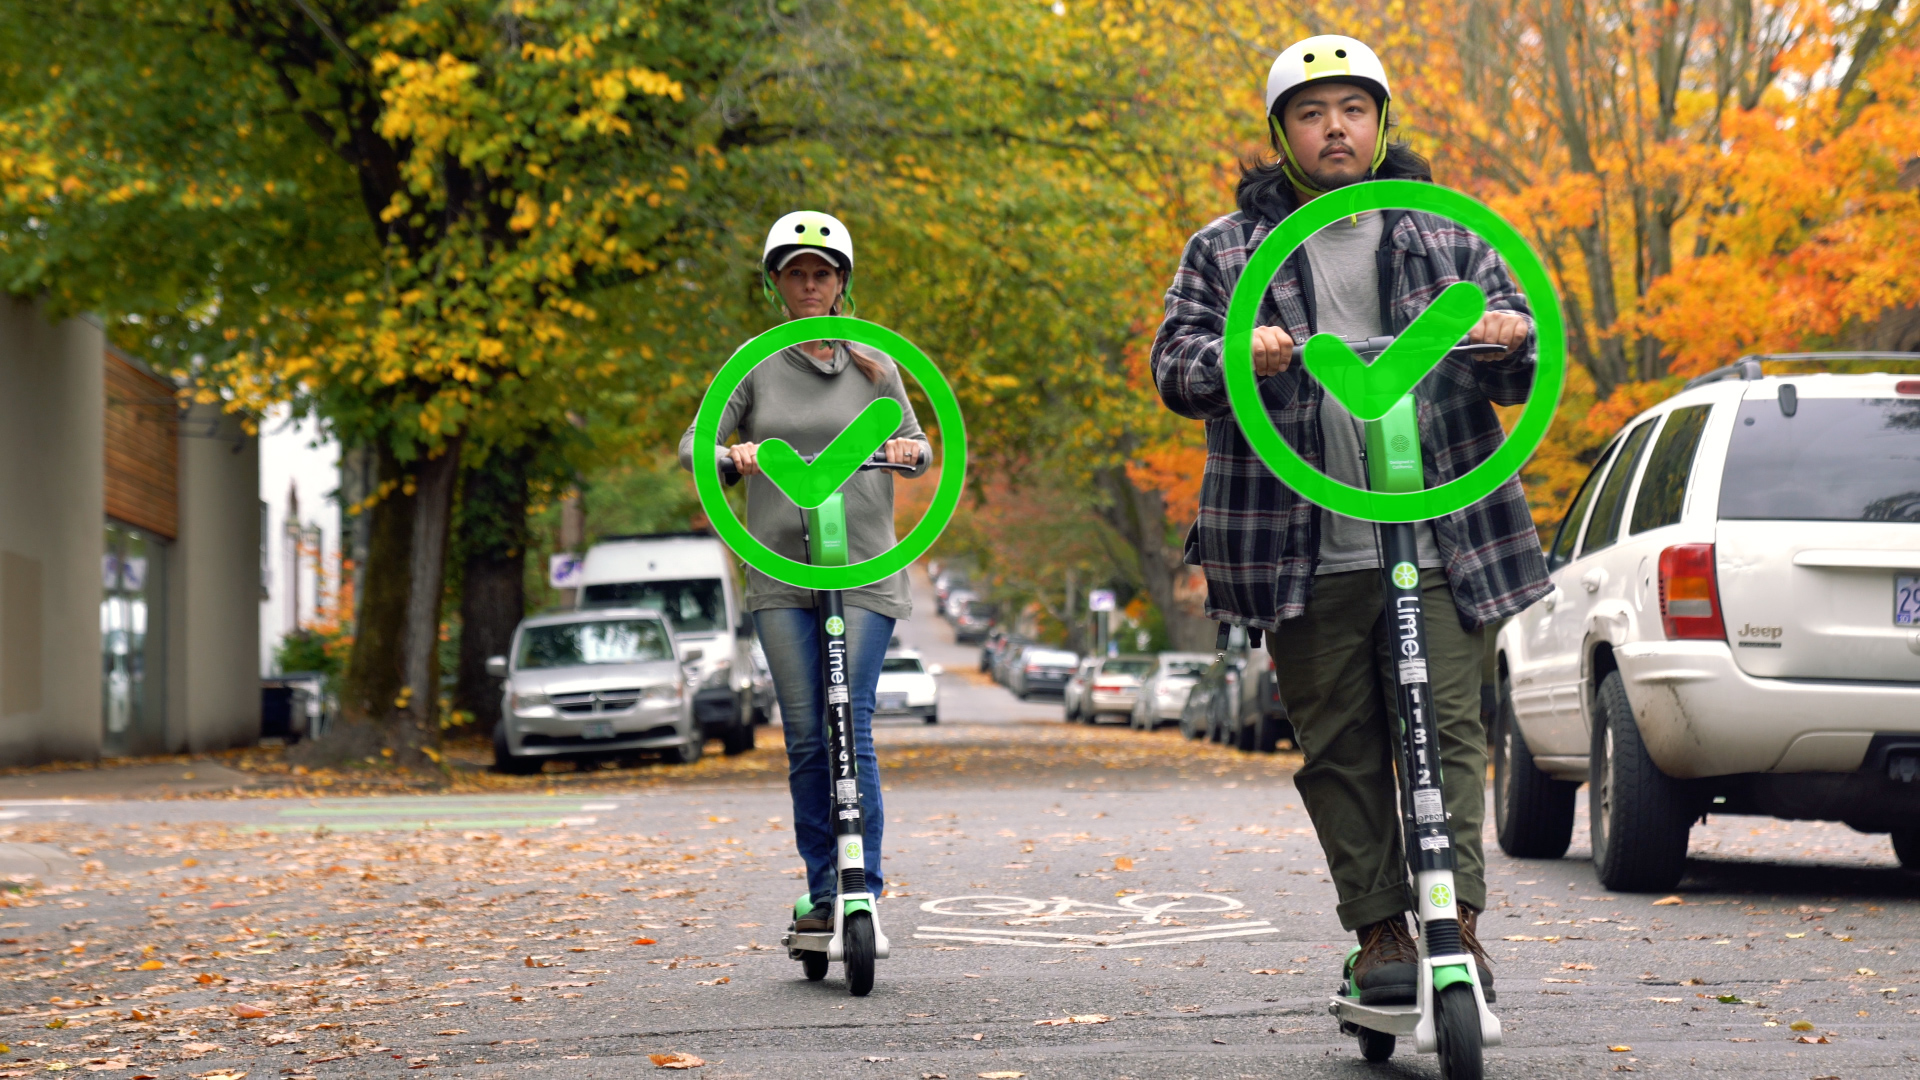 Two people ride Lime scooters and are overlaid with green checkmarks.